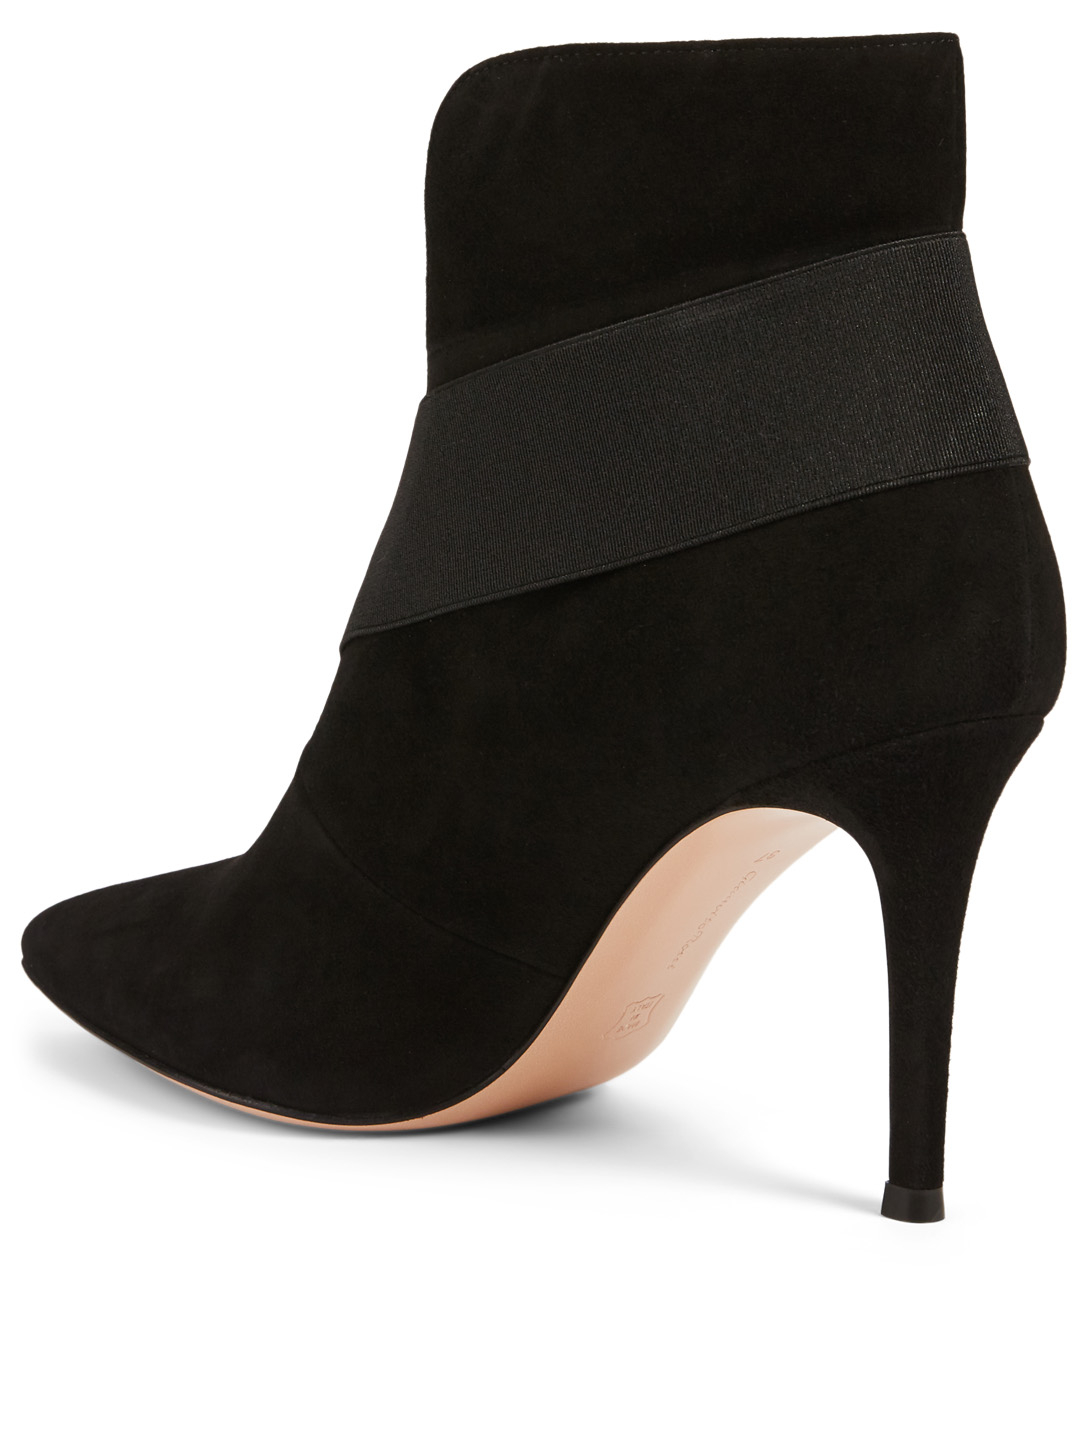 GIANVITO ROSSI Suede Ankle Boots Women's Black